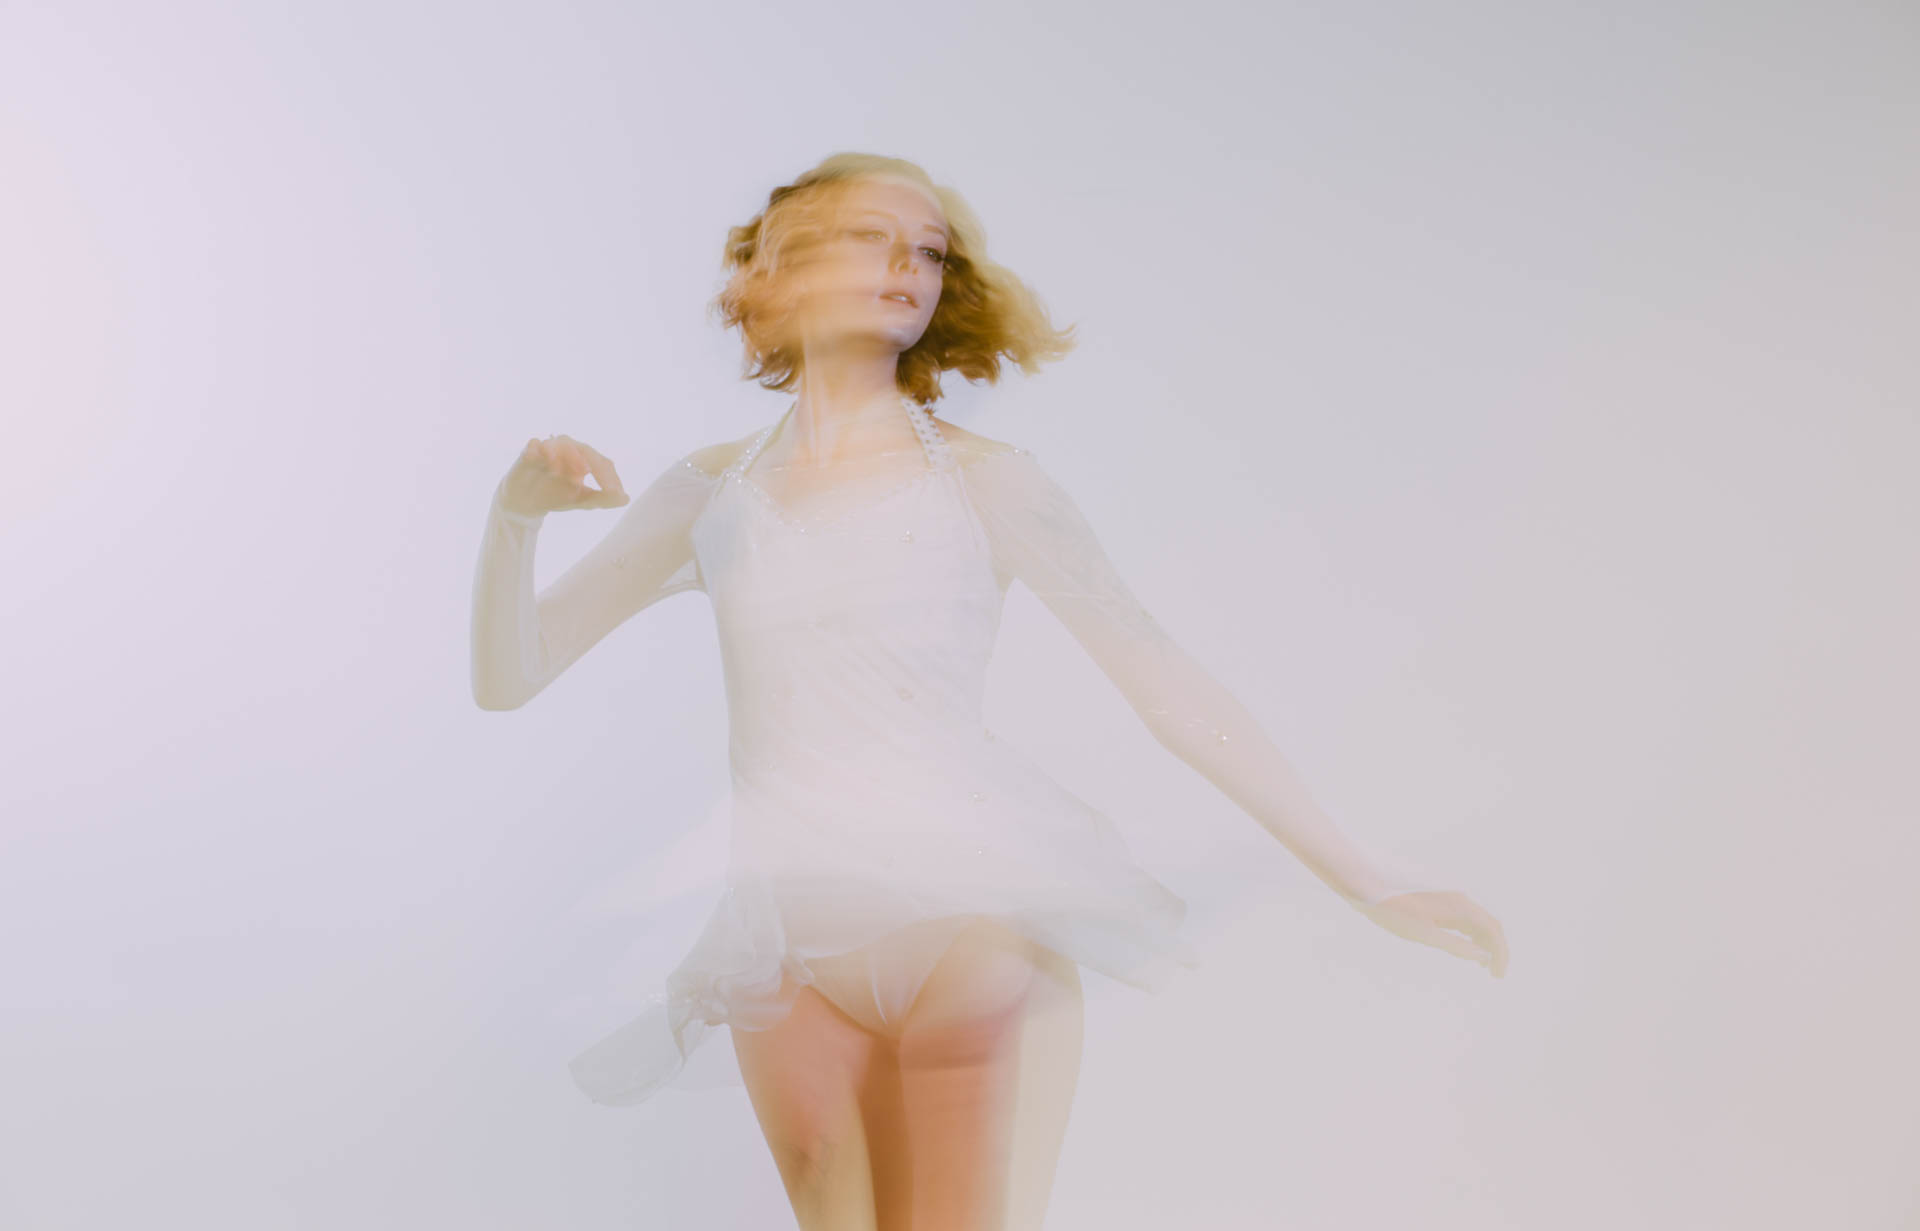 mariah-ballet-blur-in-white-8961